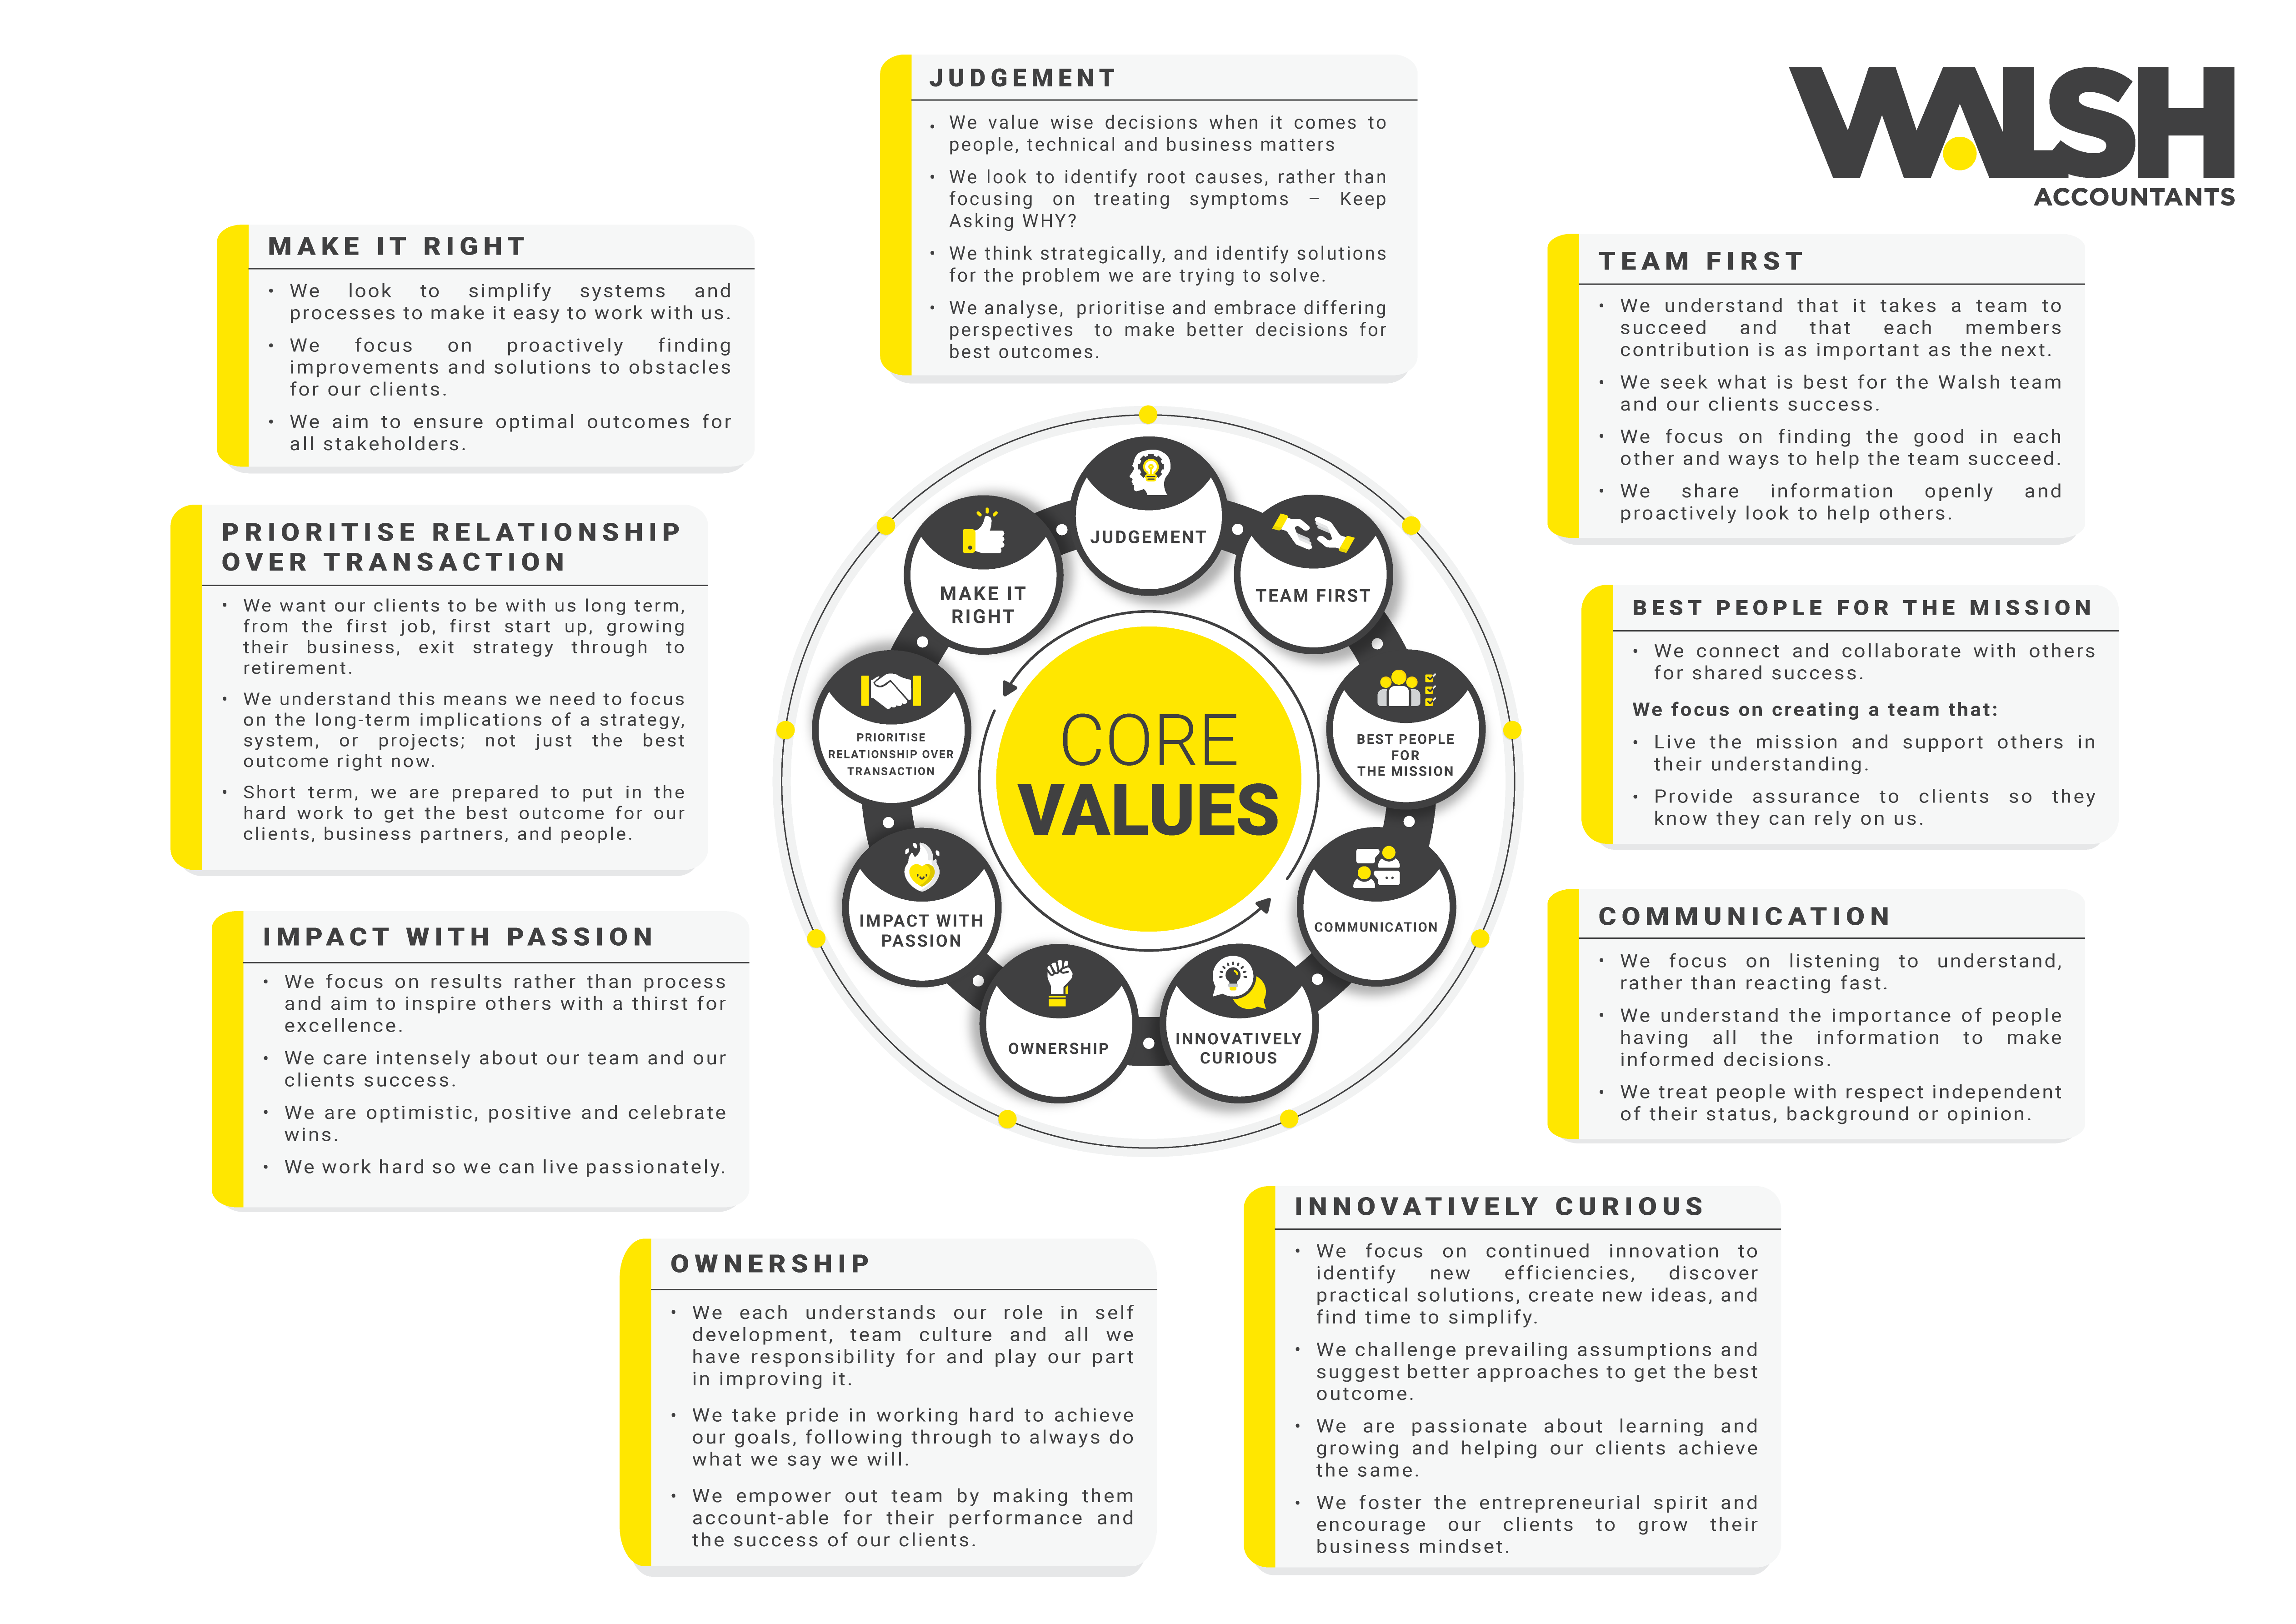 03 09 2020 Wa Core Values External With Content